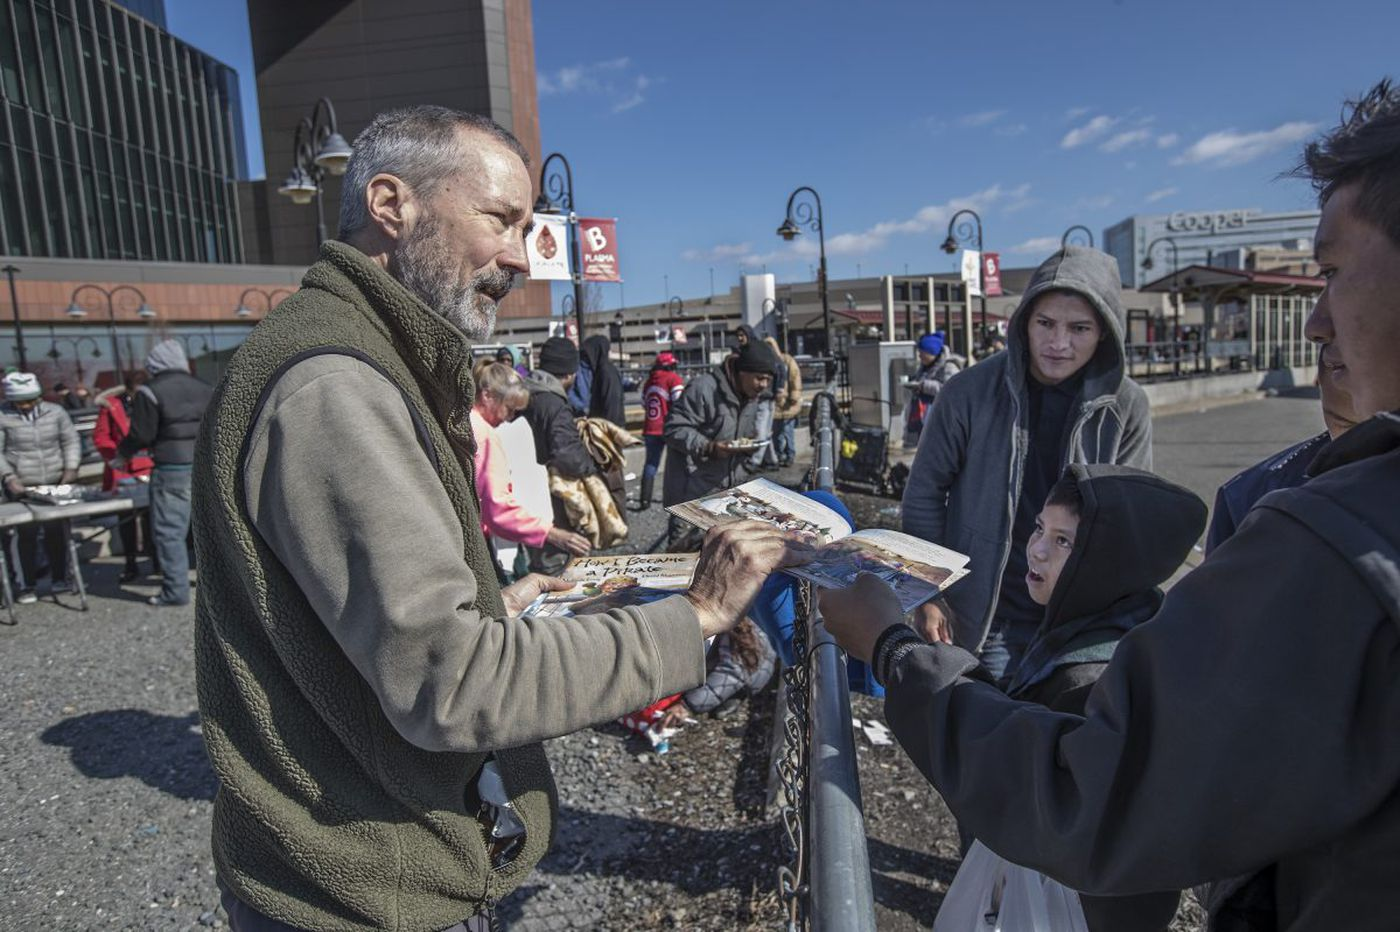 In Camden, 'Pop Up Library' answers a need to read | Kevin Riordan